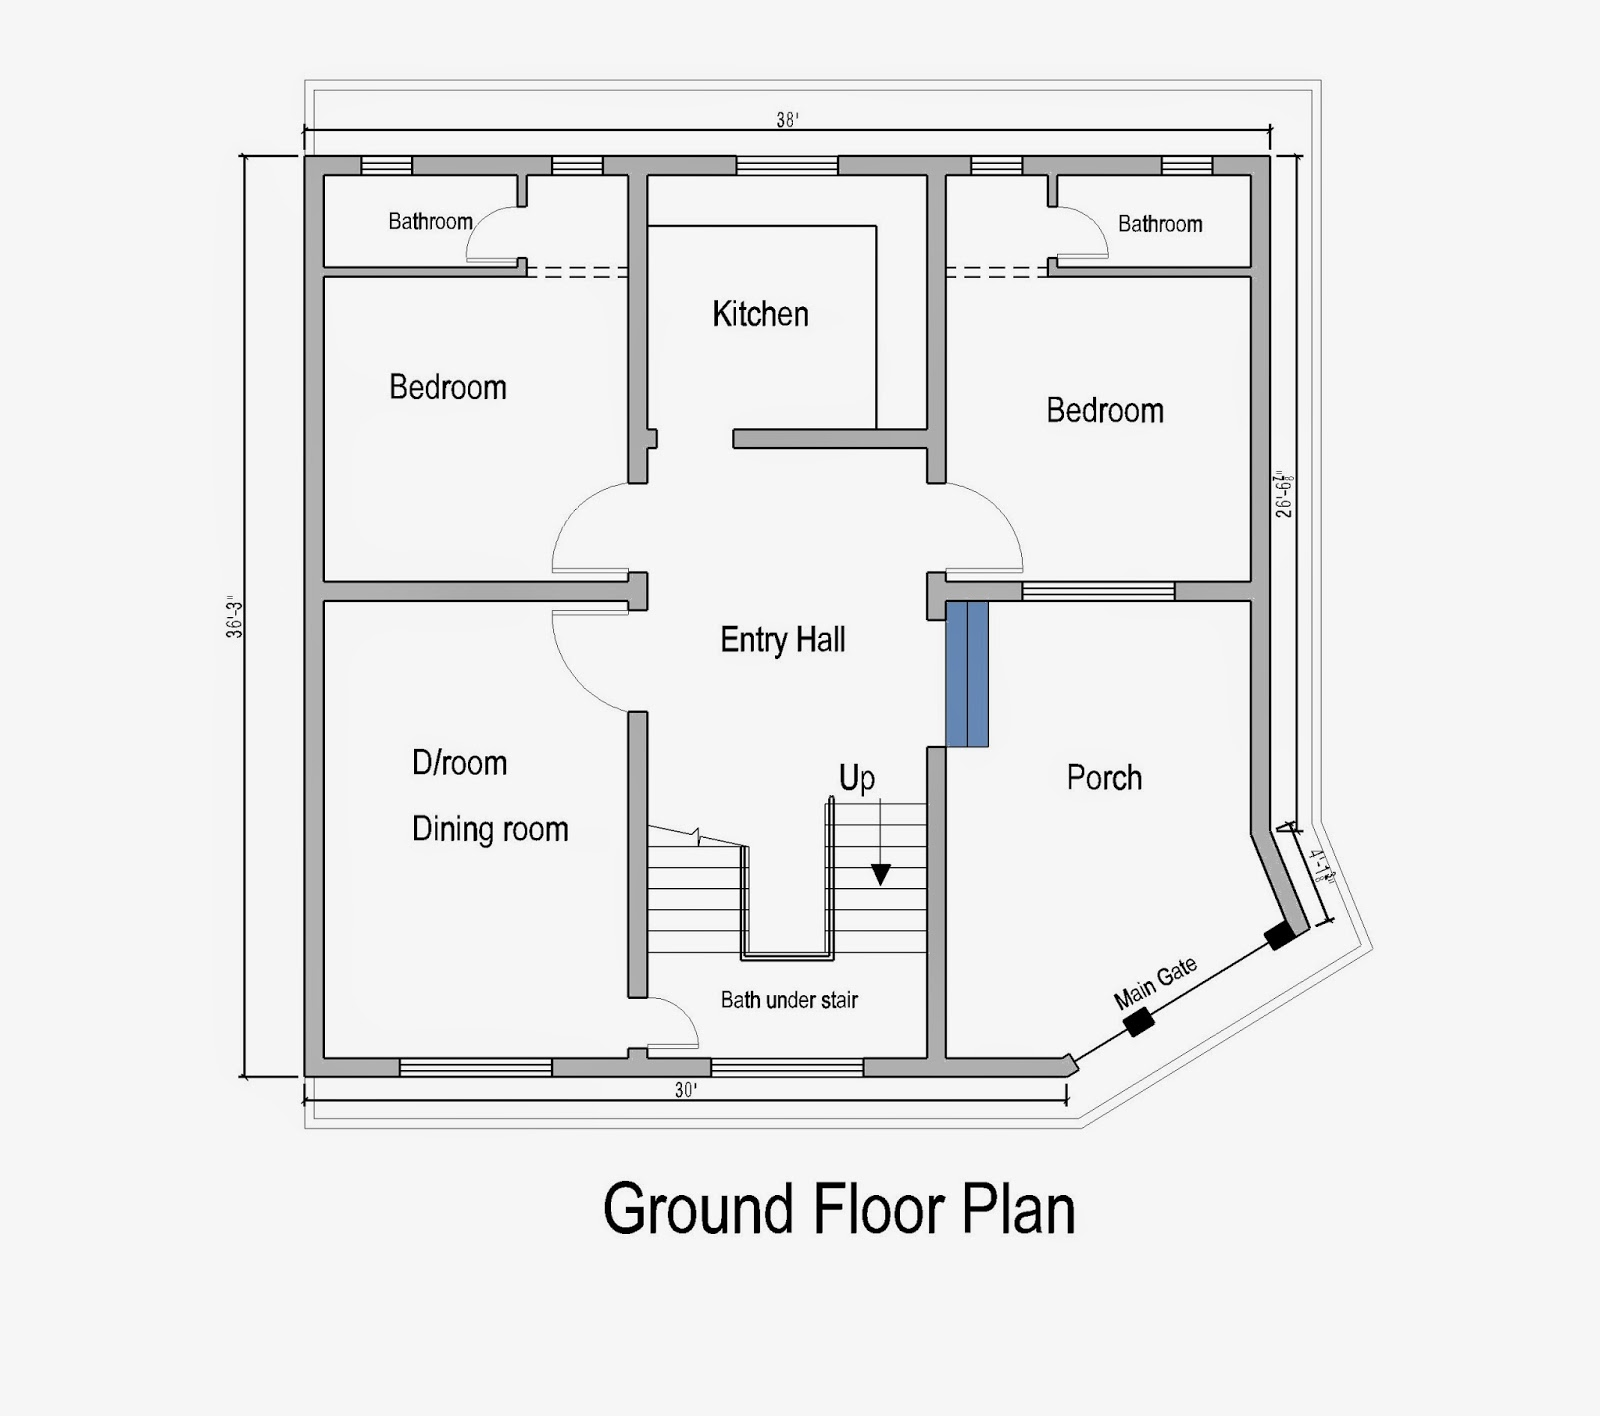 Home plans in pakistan home decor architect designer home plan in pakistan Design your house plans